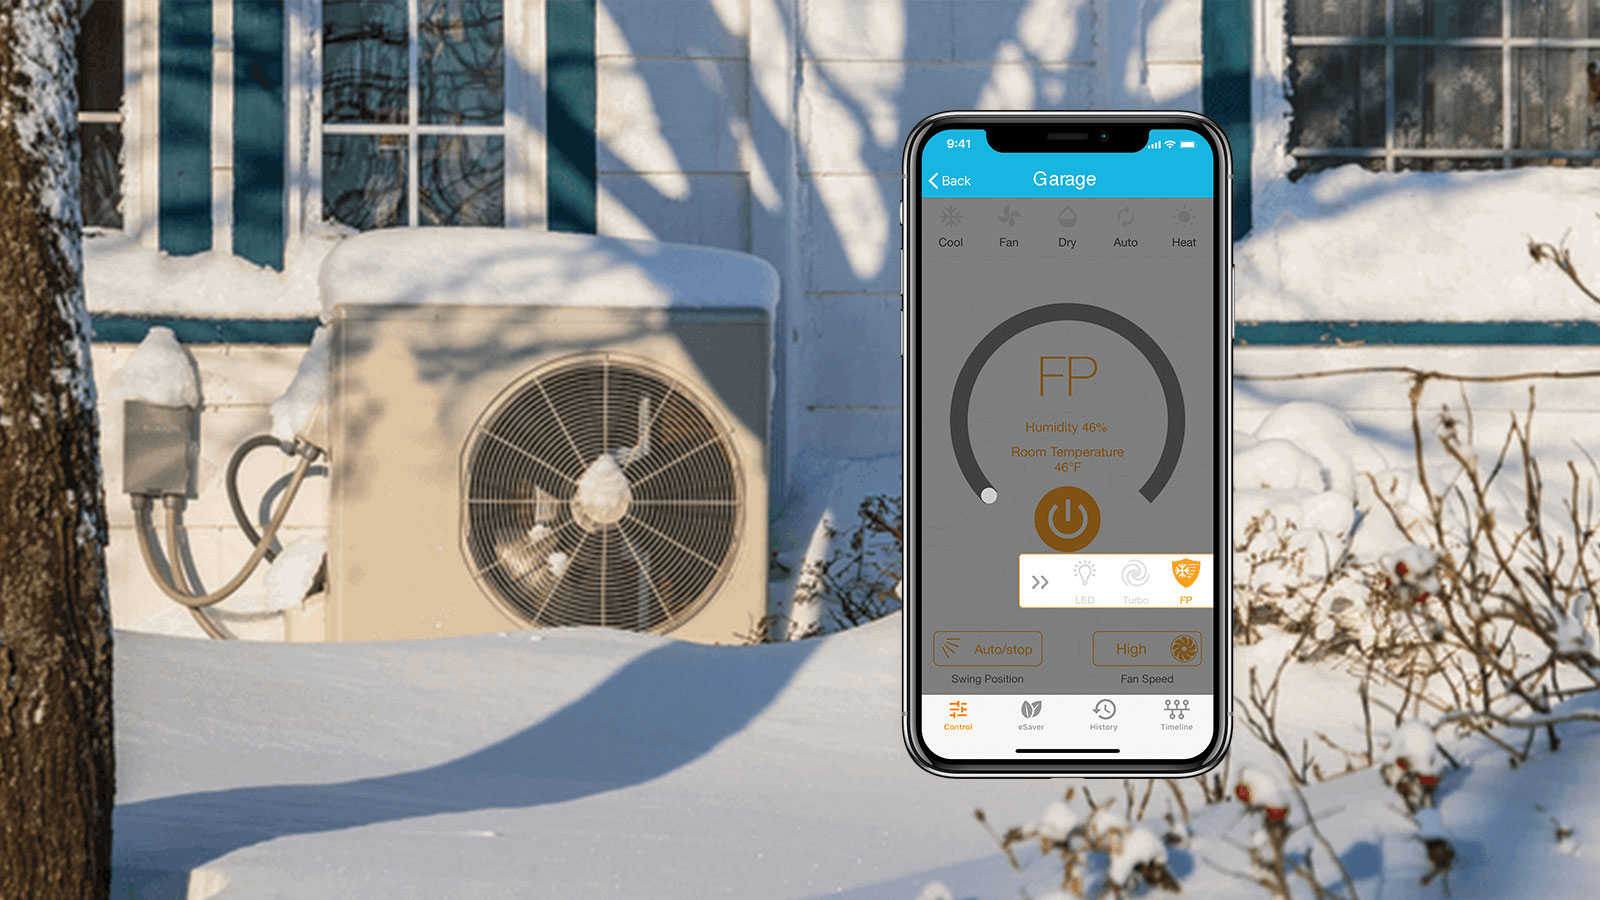 enabling freeze protection mode on the cielo home app